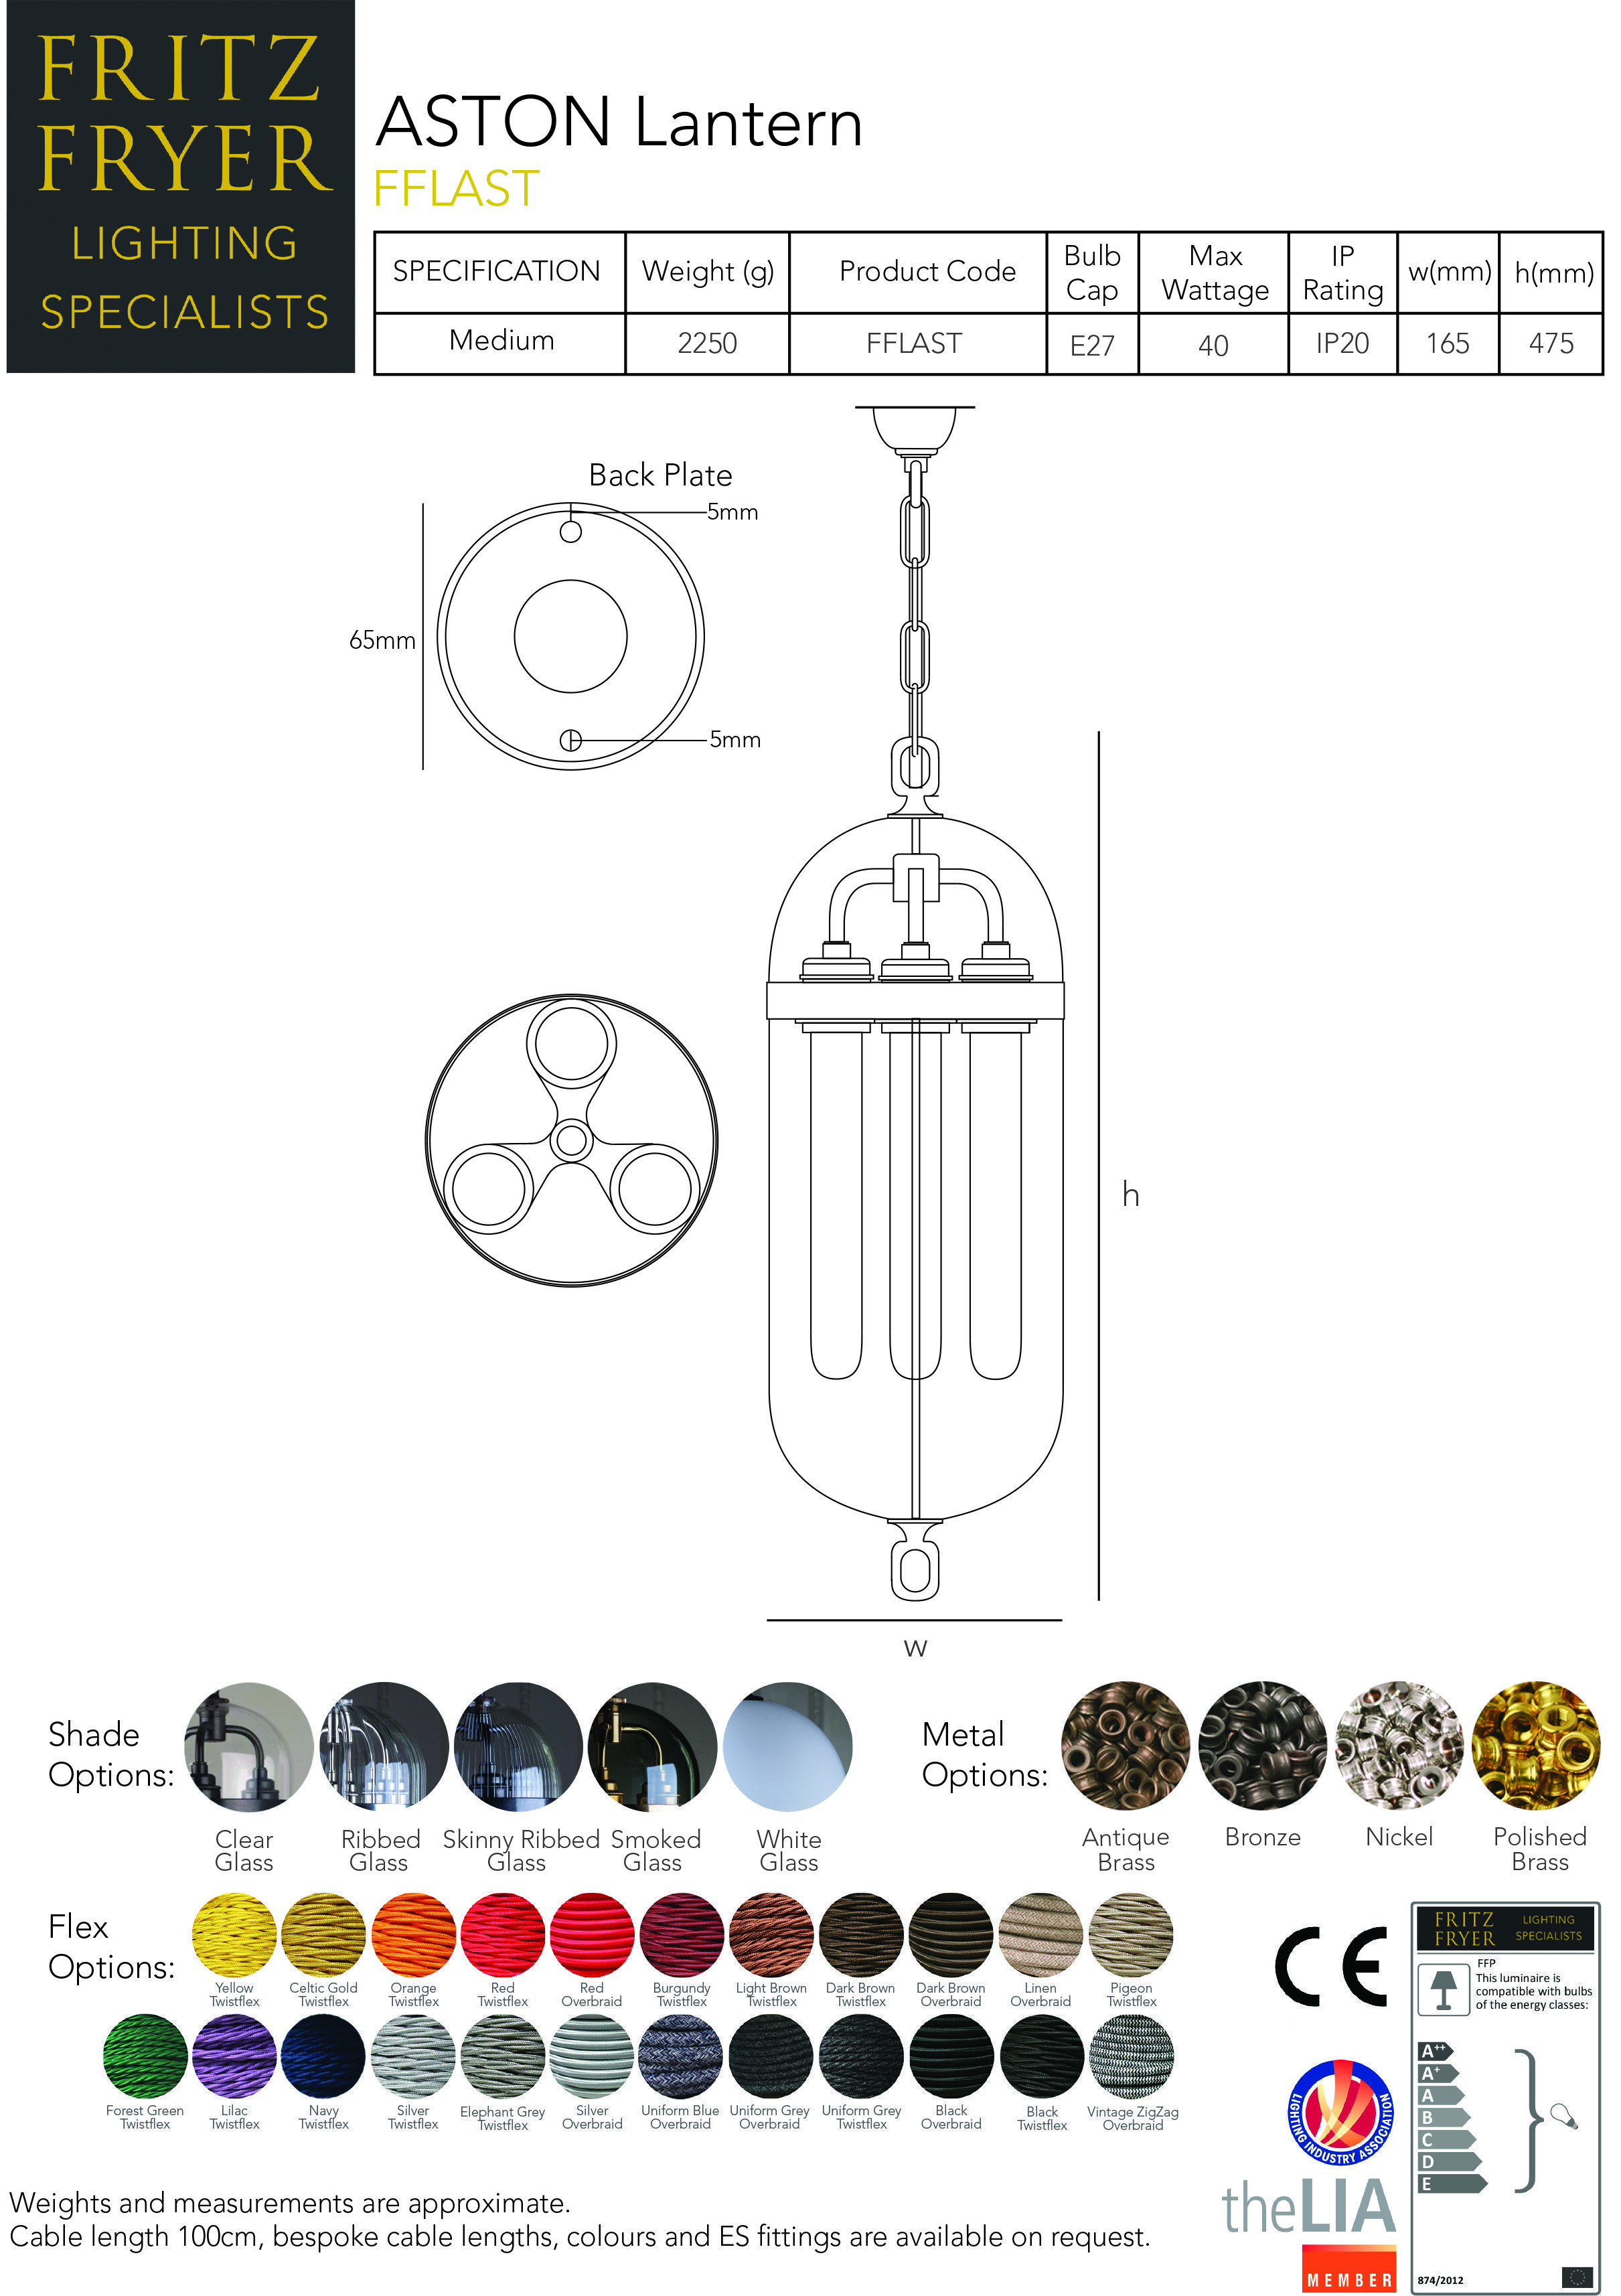 Designer-lighting-technical-data-sheet-for-aston-lantern